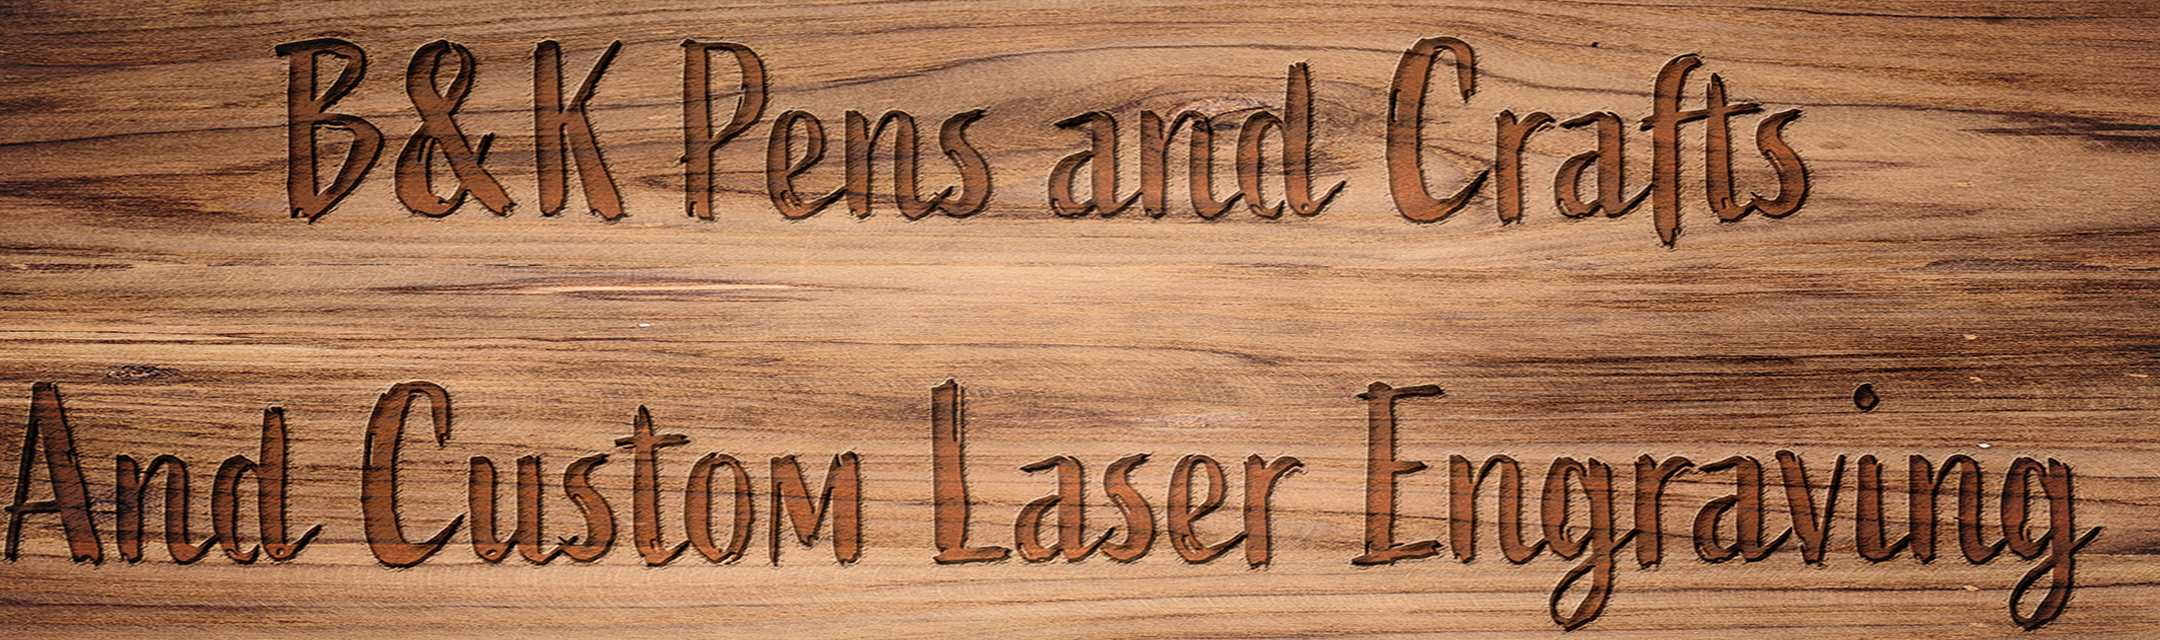 B&K Pens and Crafts and Custom Laser Engraving